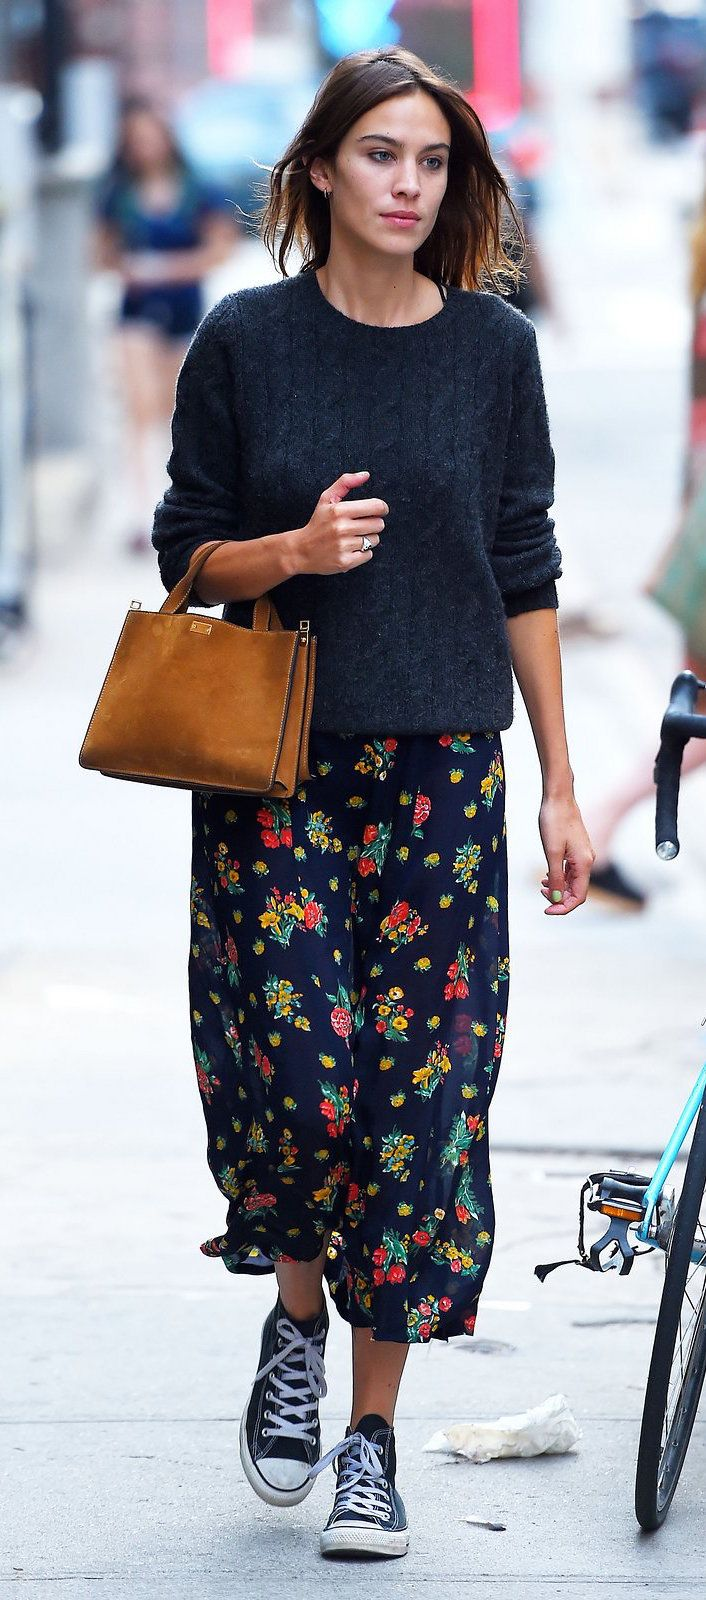 Alexa Chung in a floral maxi skirt, blue cableknit sweater, black Chucks, and a tan purse